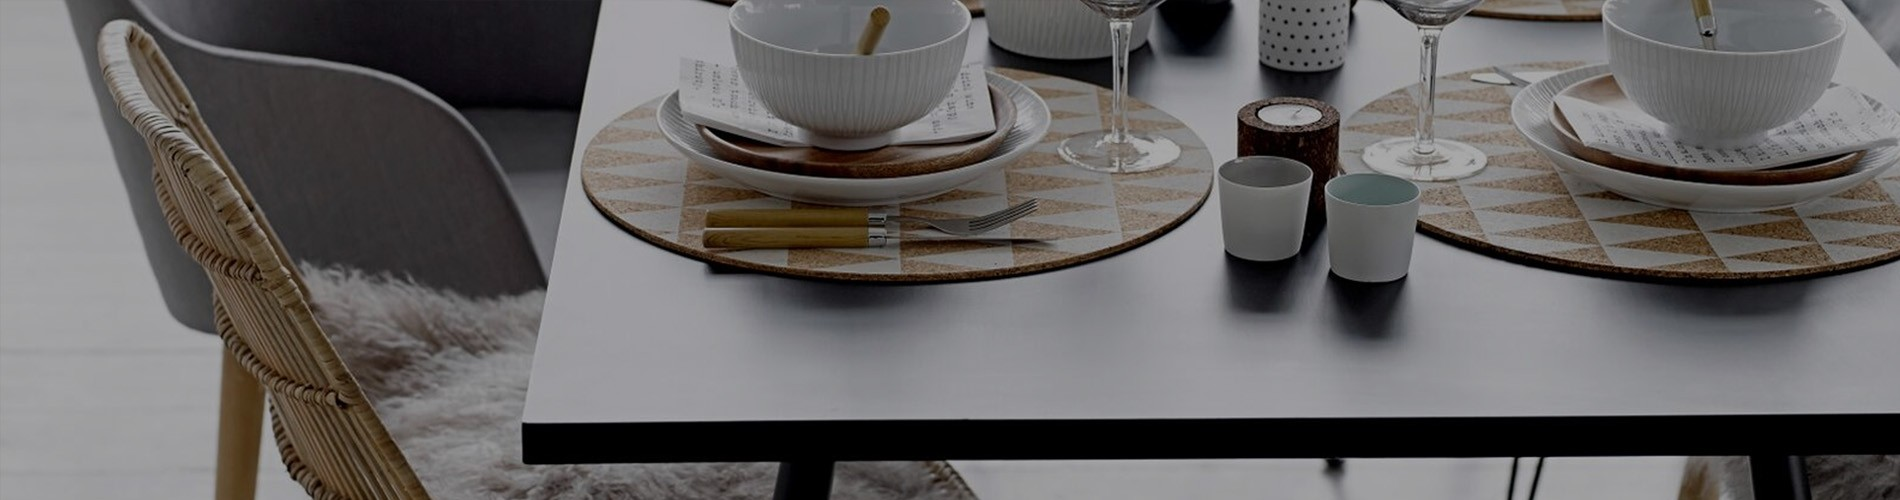 Designer serve ware for the modern contemporary home.